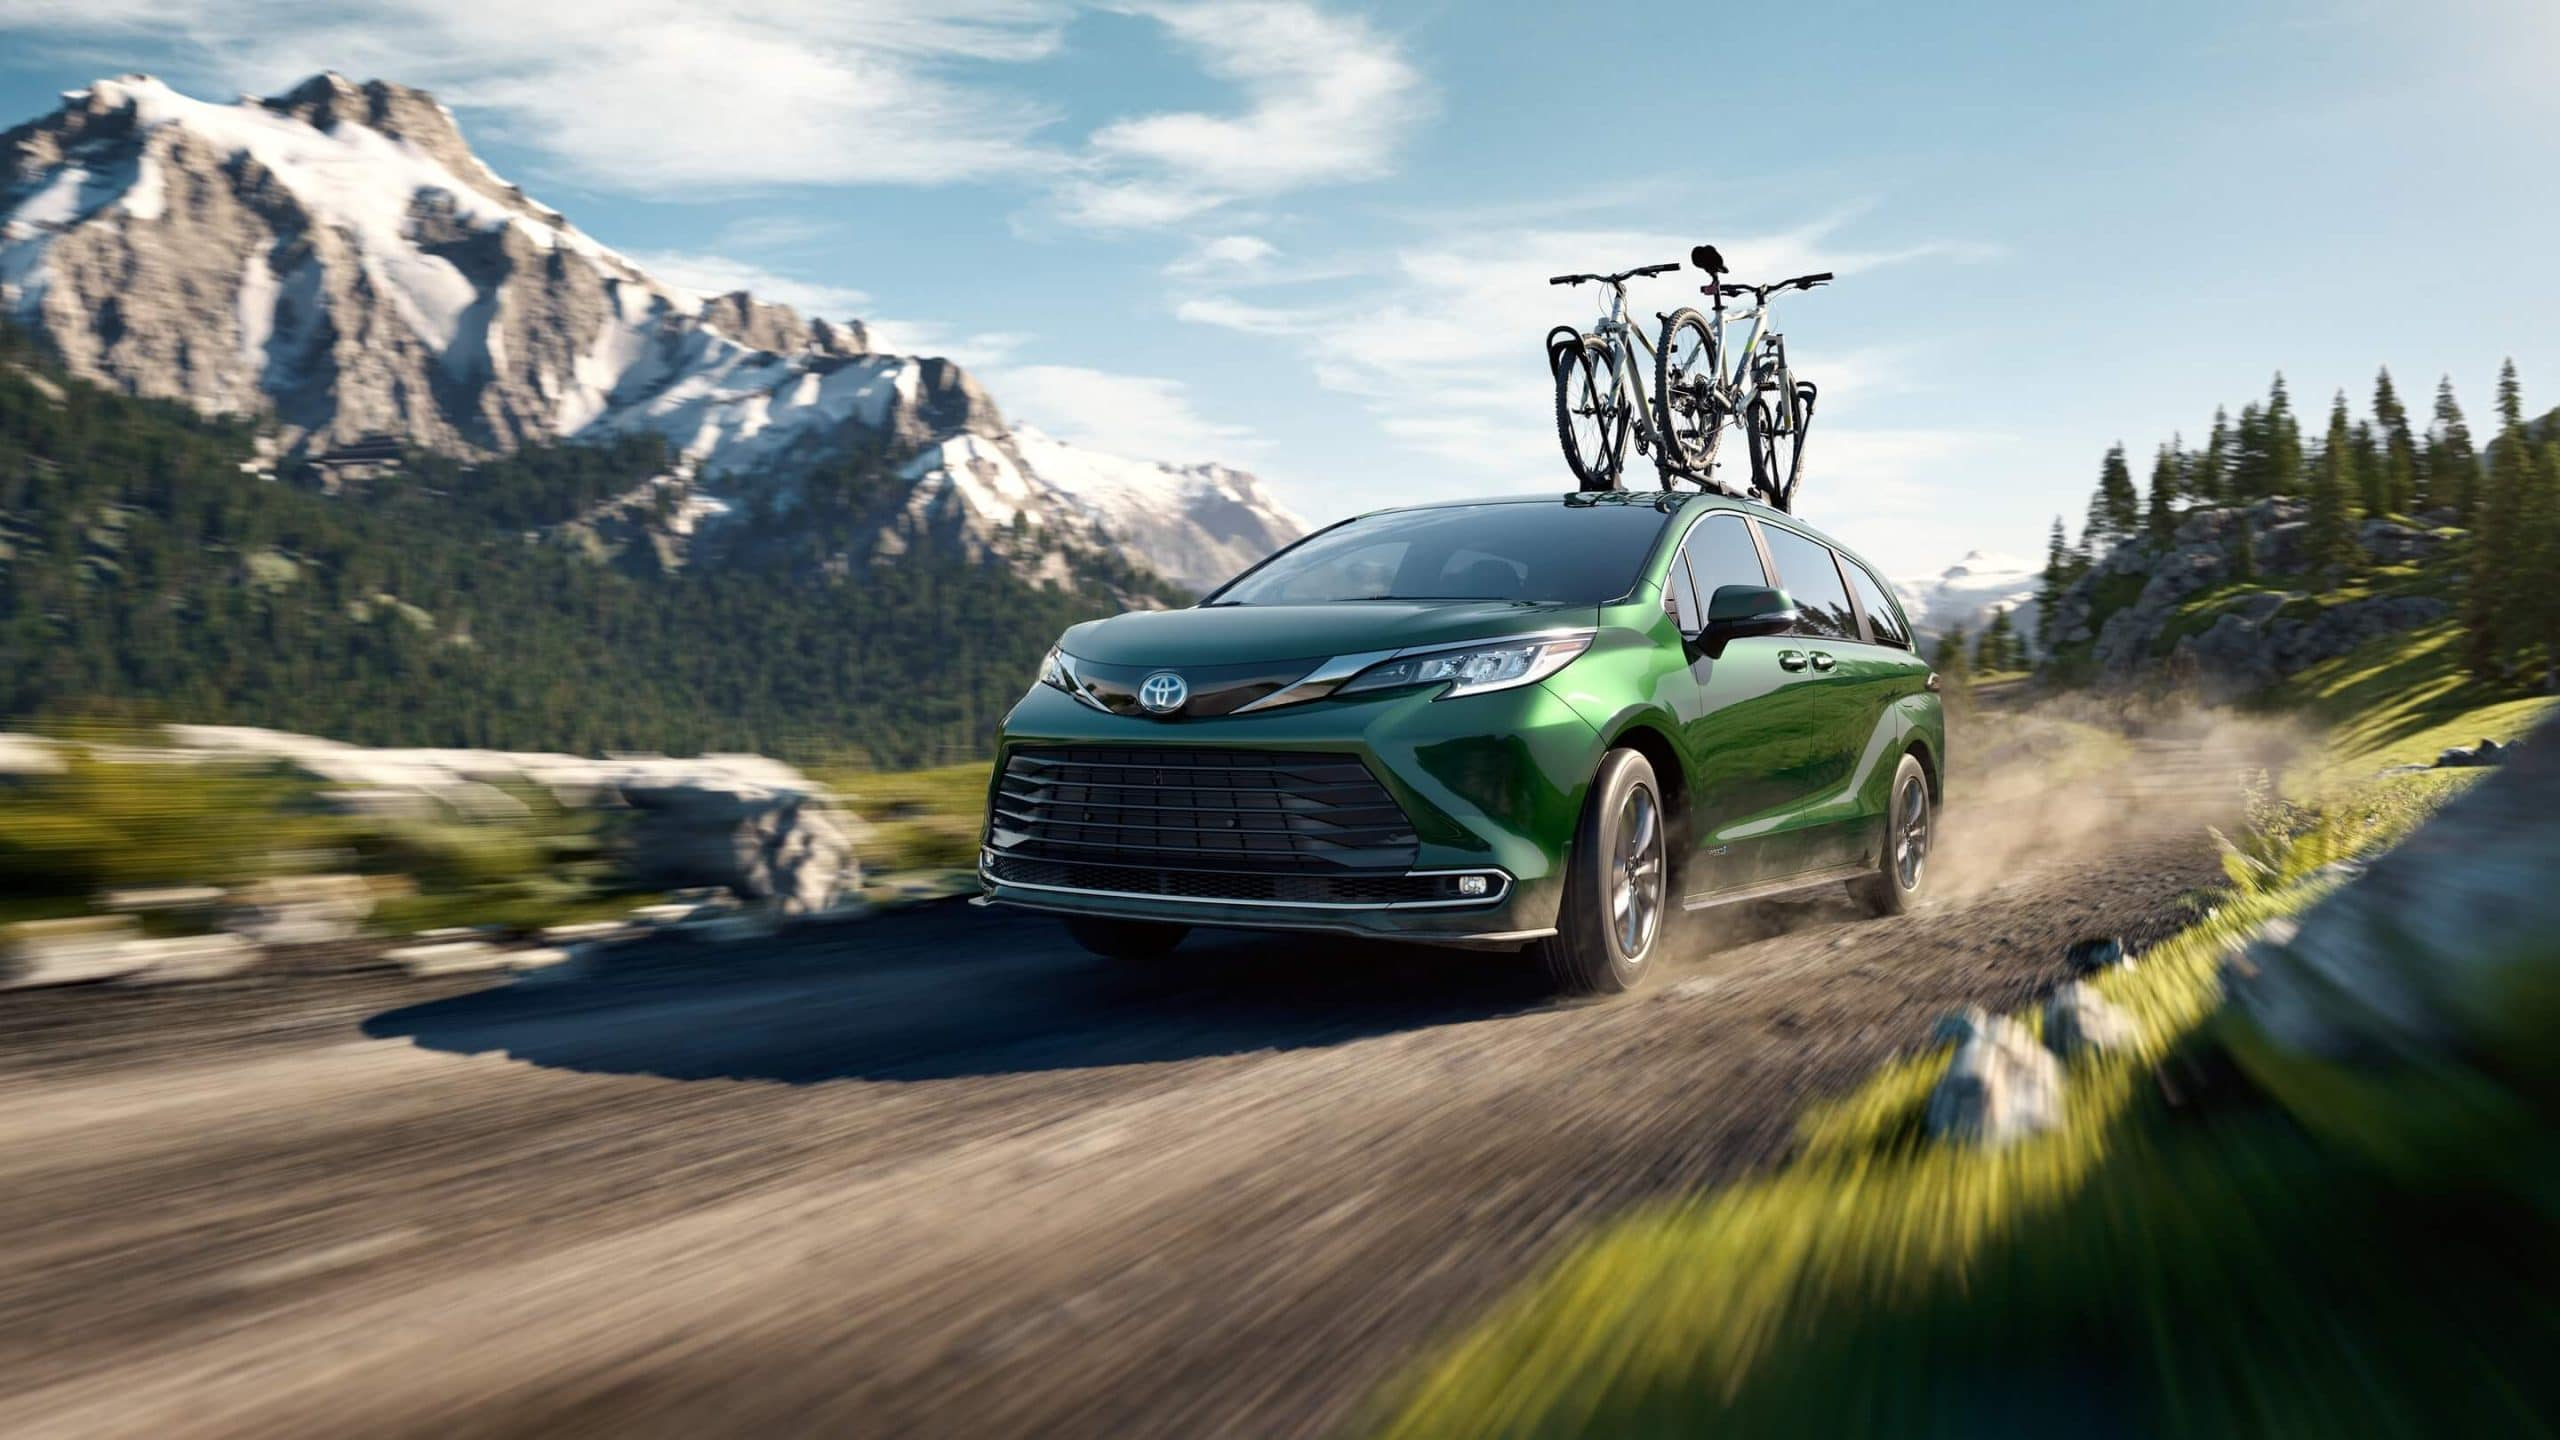 New Toyota Sienna driving off-road with bikes attached to the roof rack